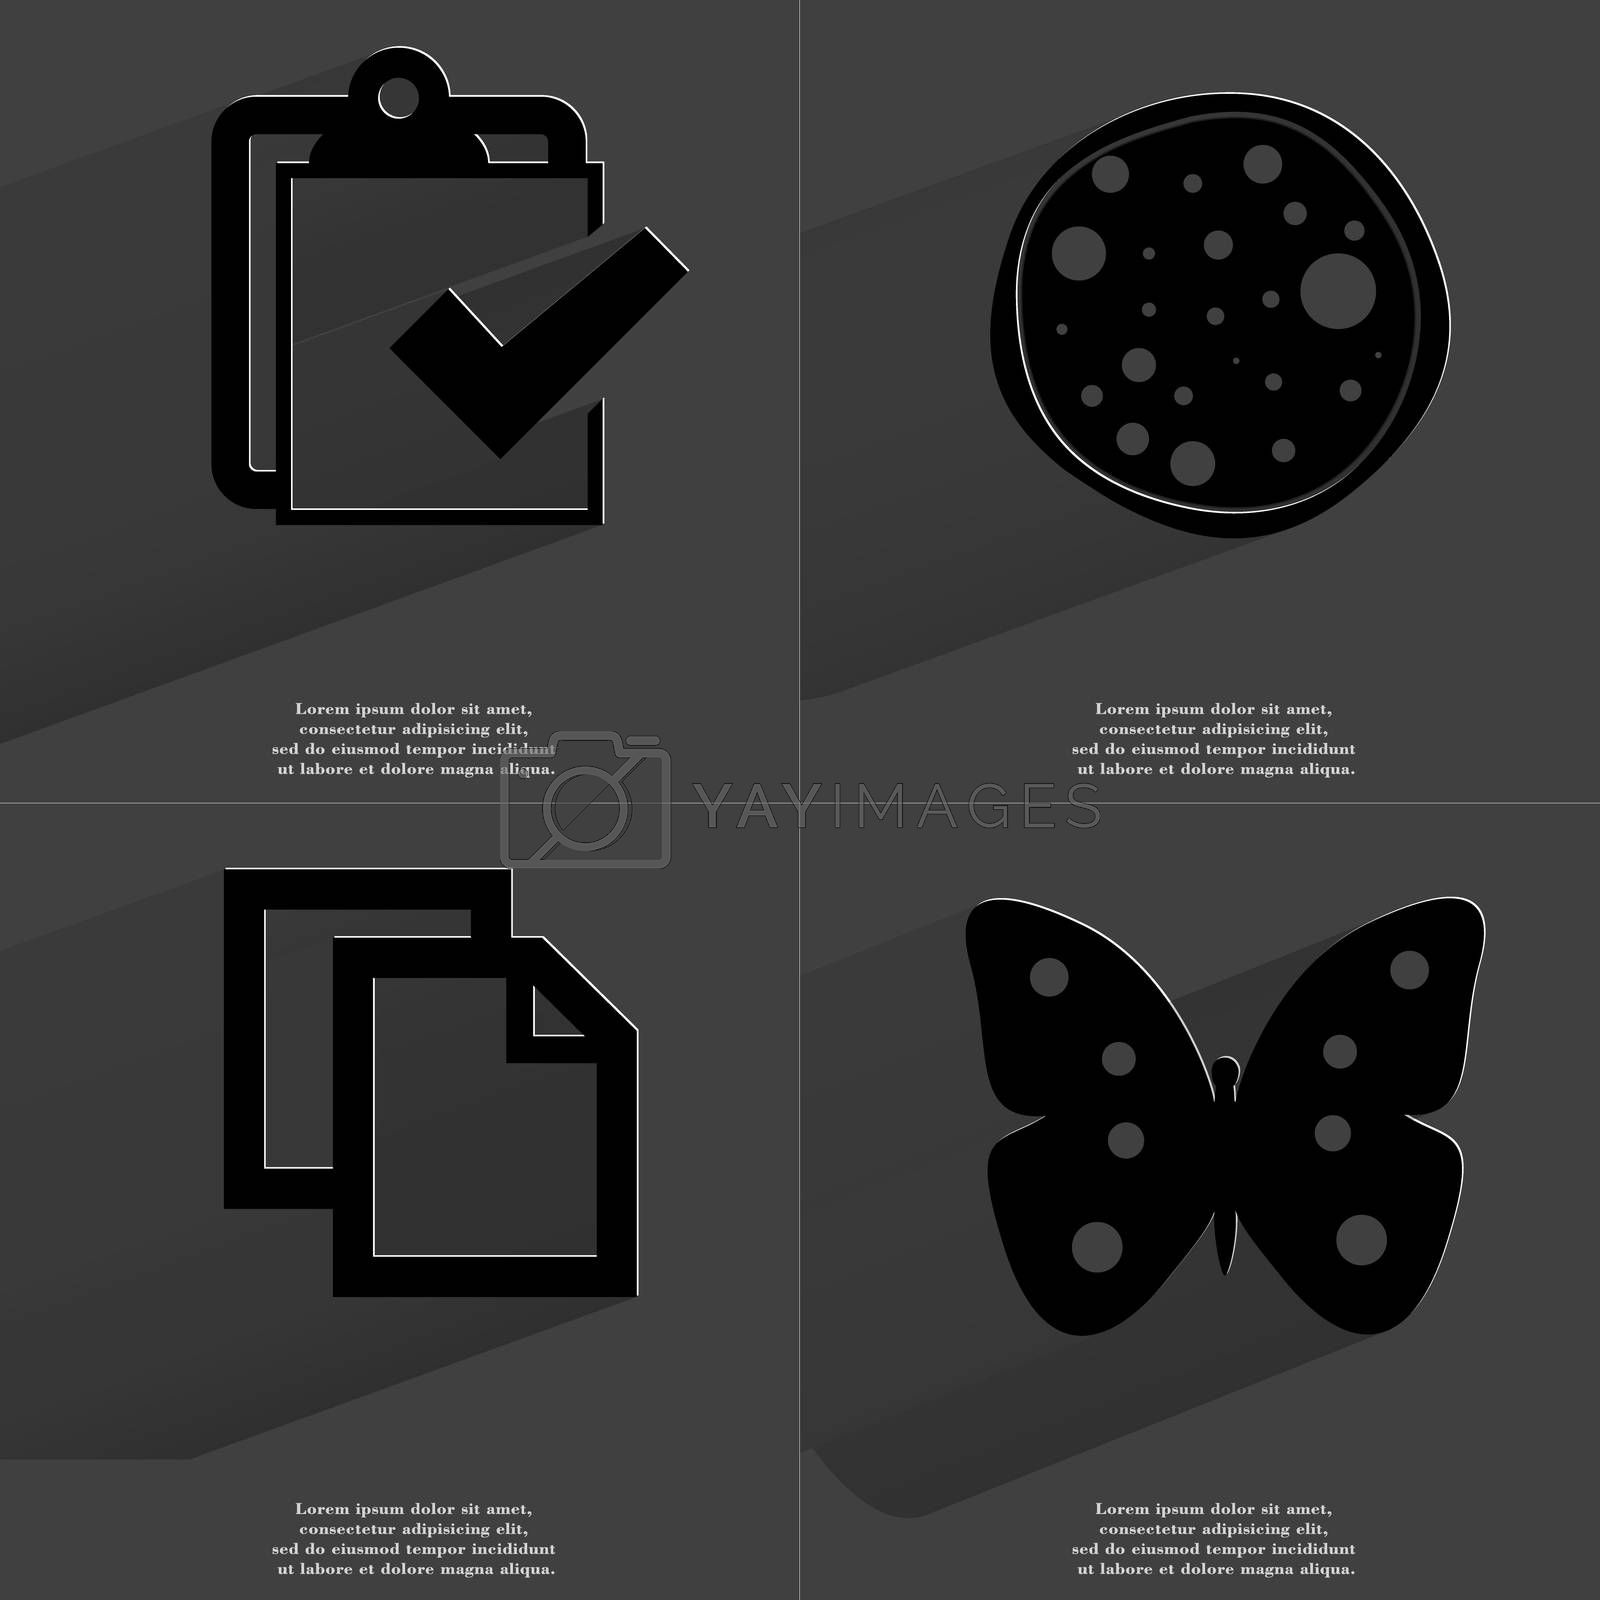 Royalty free image of Task completed, Pizza, Copy icon, Butterfly. Symbols with long shadow. Flat design by serhii_lohvyniuk